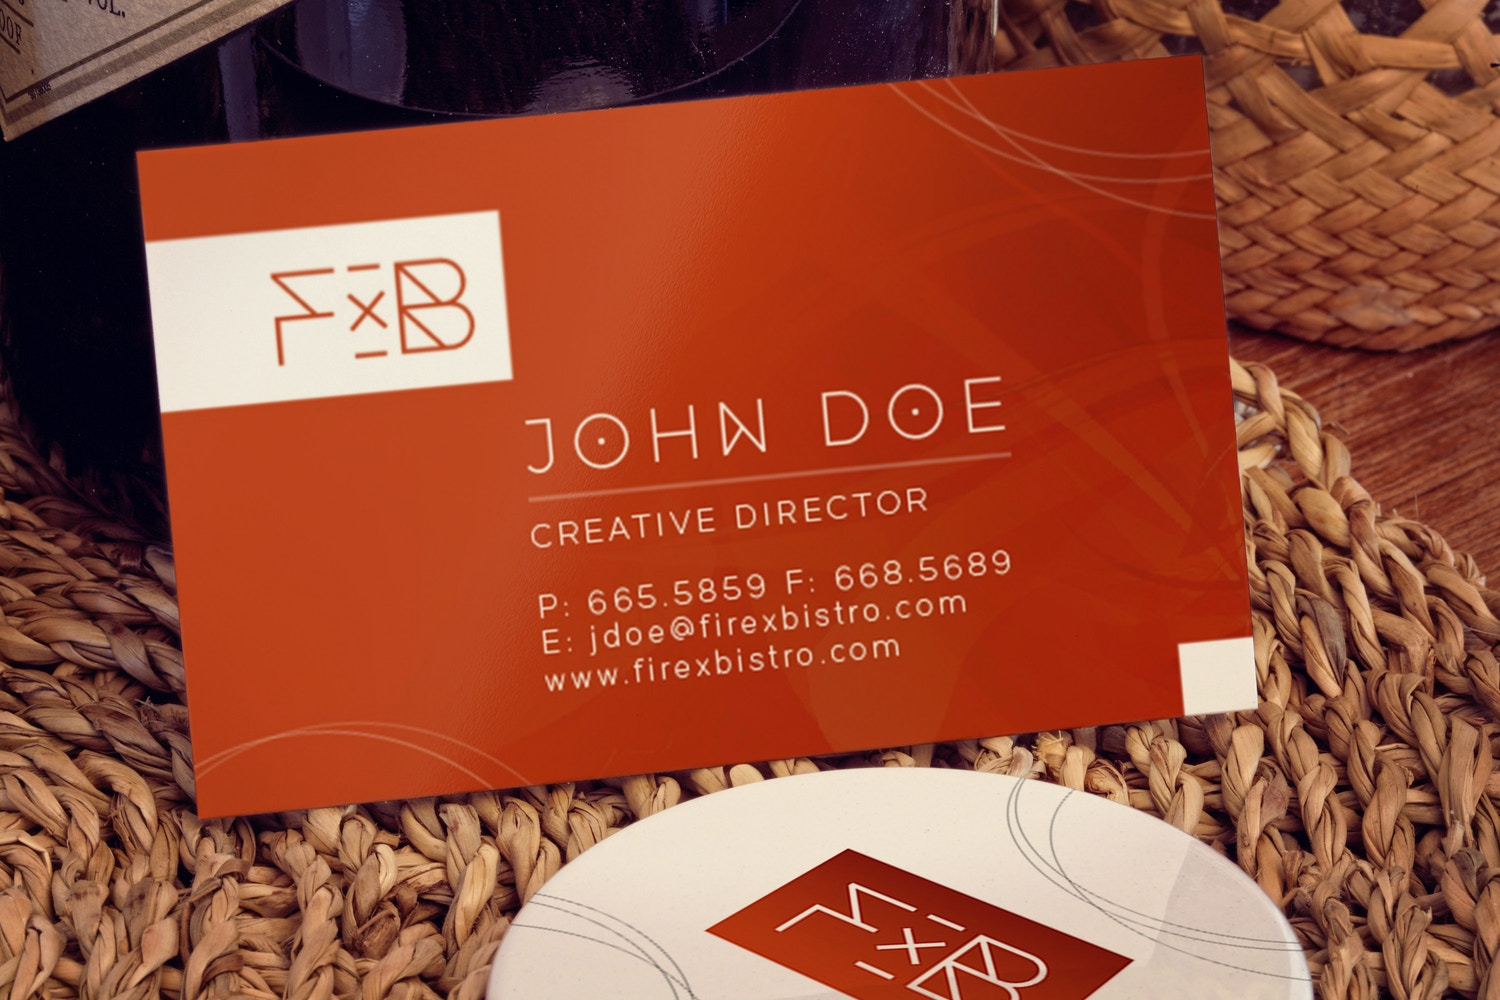 Business card, Button pin Mockup by 4to Pixel on Original Mockups